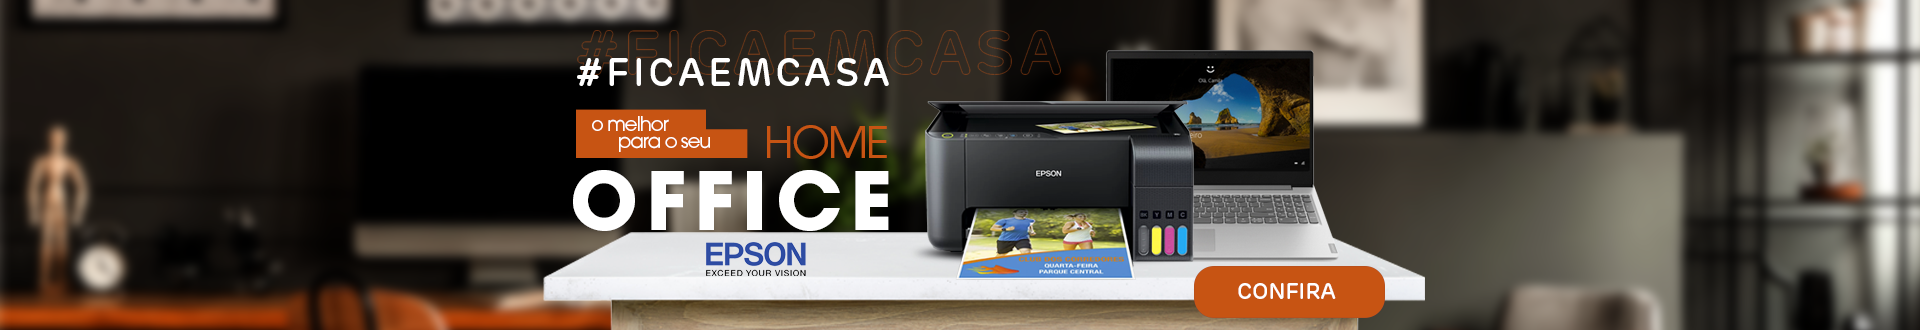 Home Office Epson